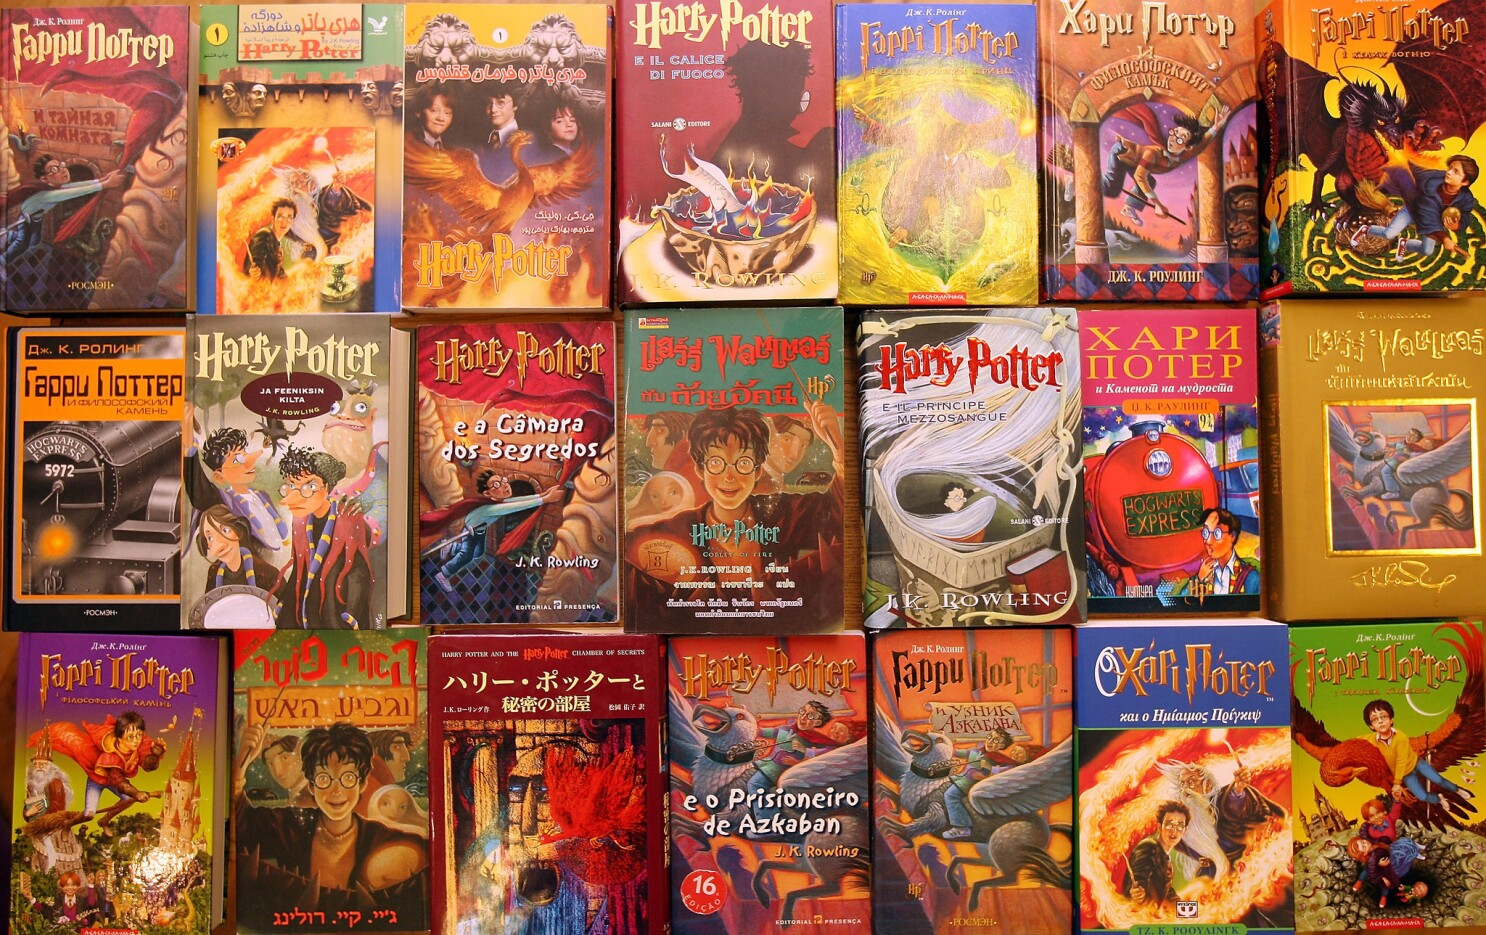 Rare 'Harry Potter' book featuring misspelled title fetches